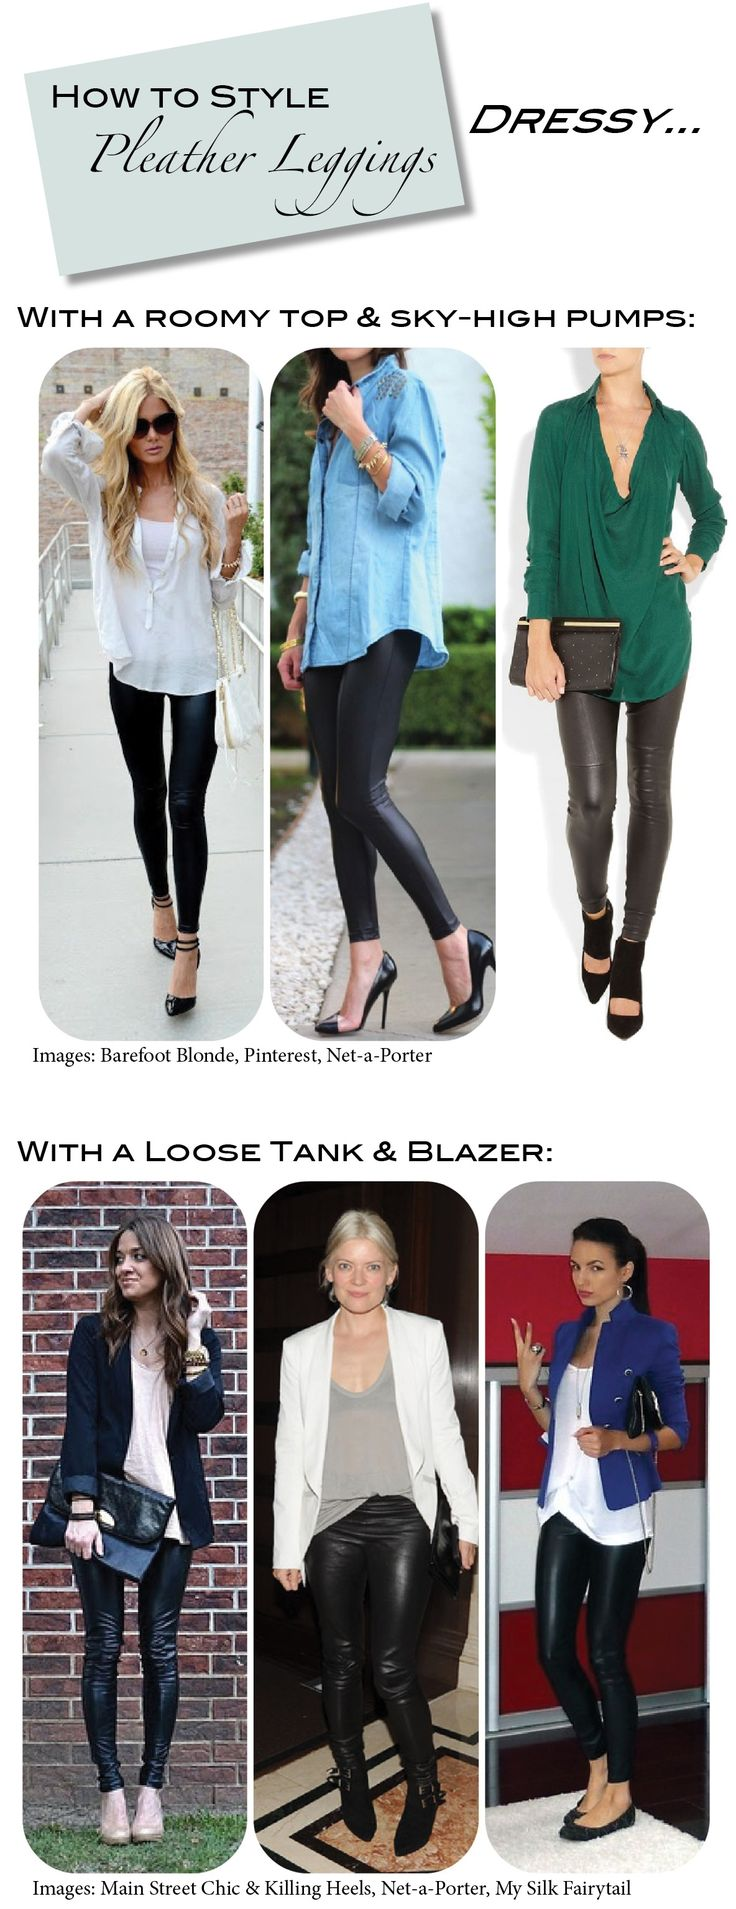 Lots of ideas for how to wear pleather or leather leggings... This idea: To dress them up - style them with loose tops, blazers and heels or flats.